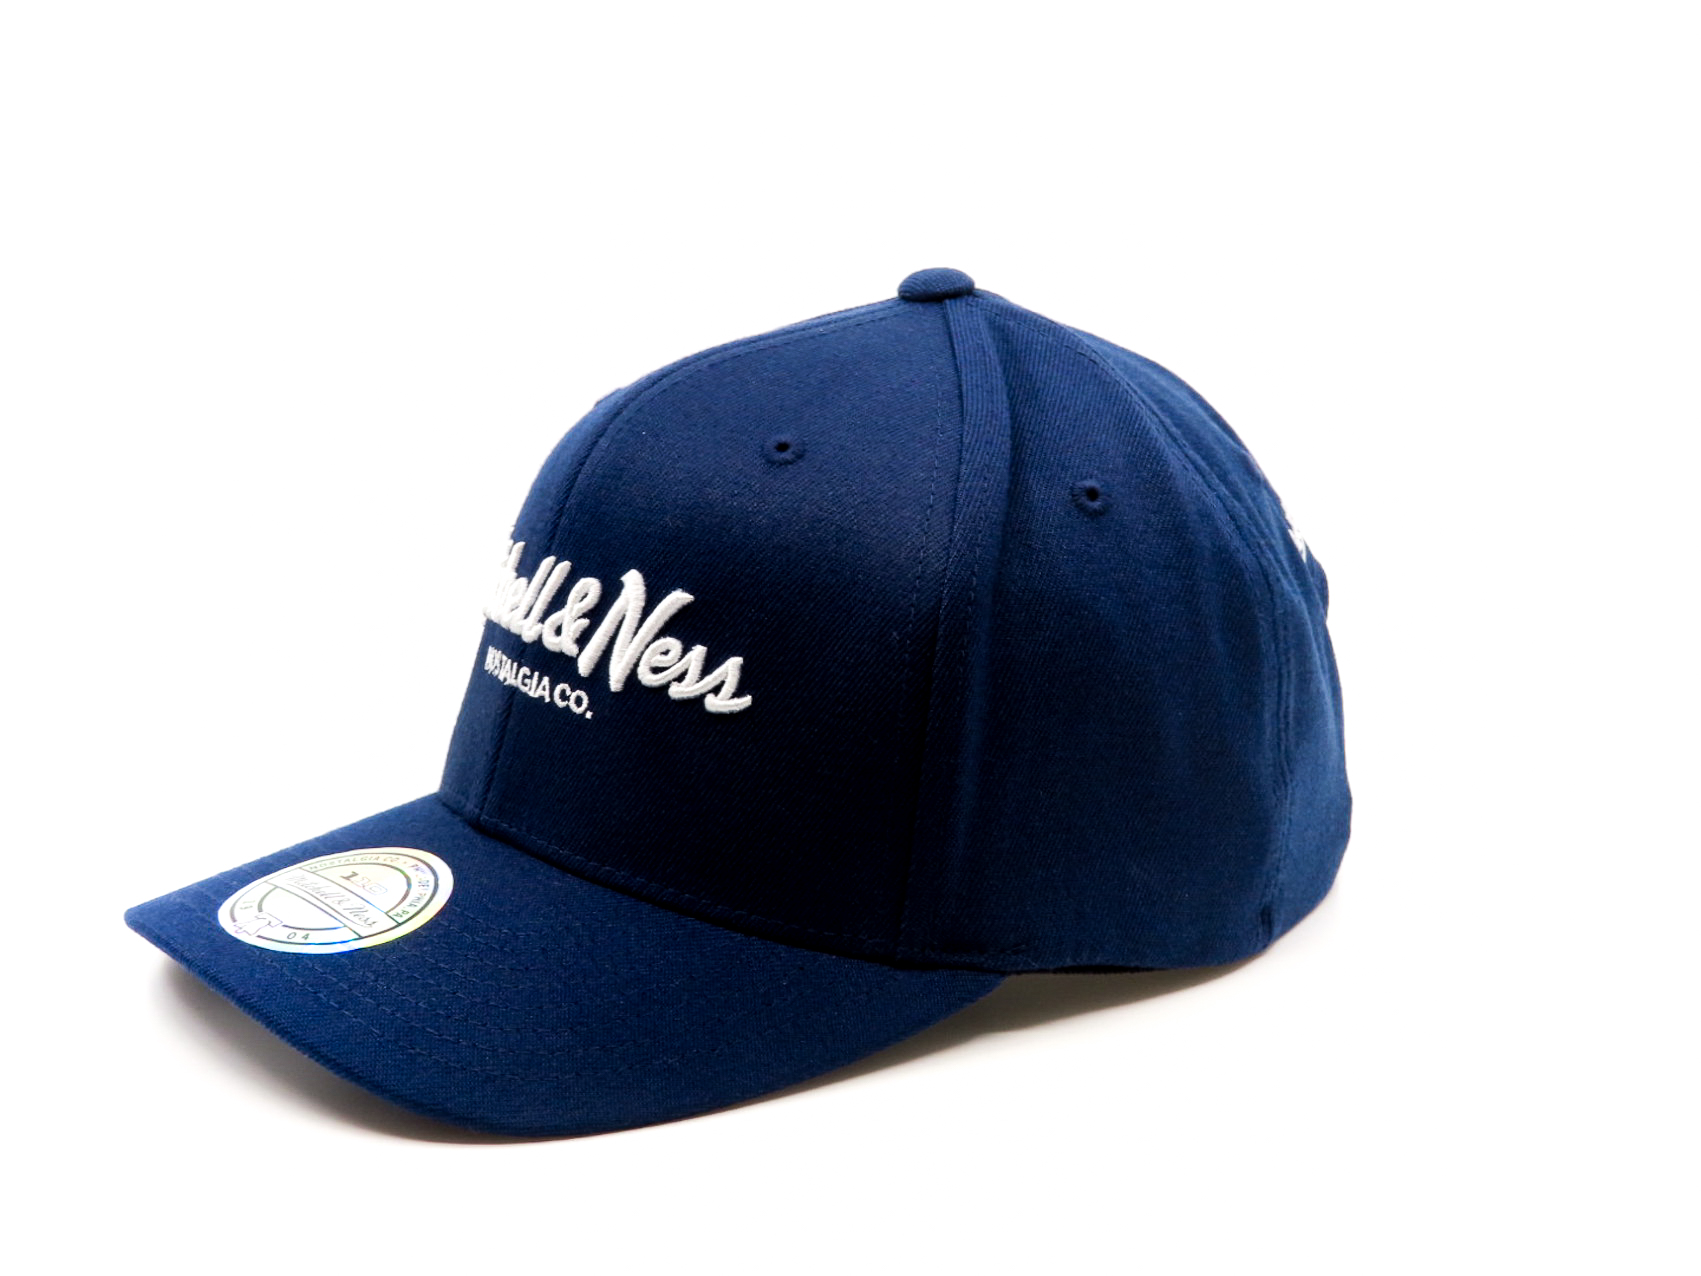 Own Brand Pinscript Navy/White 110 Reglerbar Mitchell & Ness